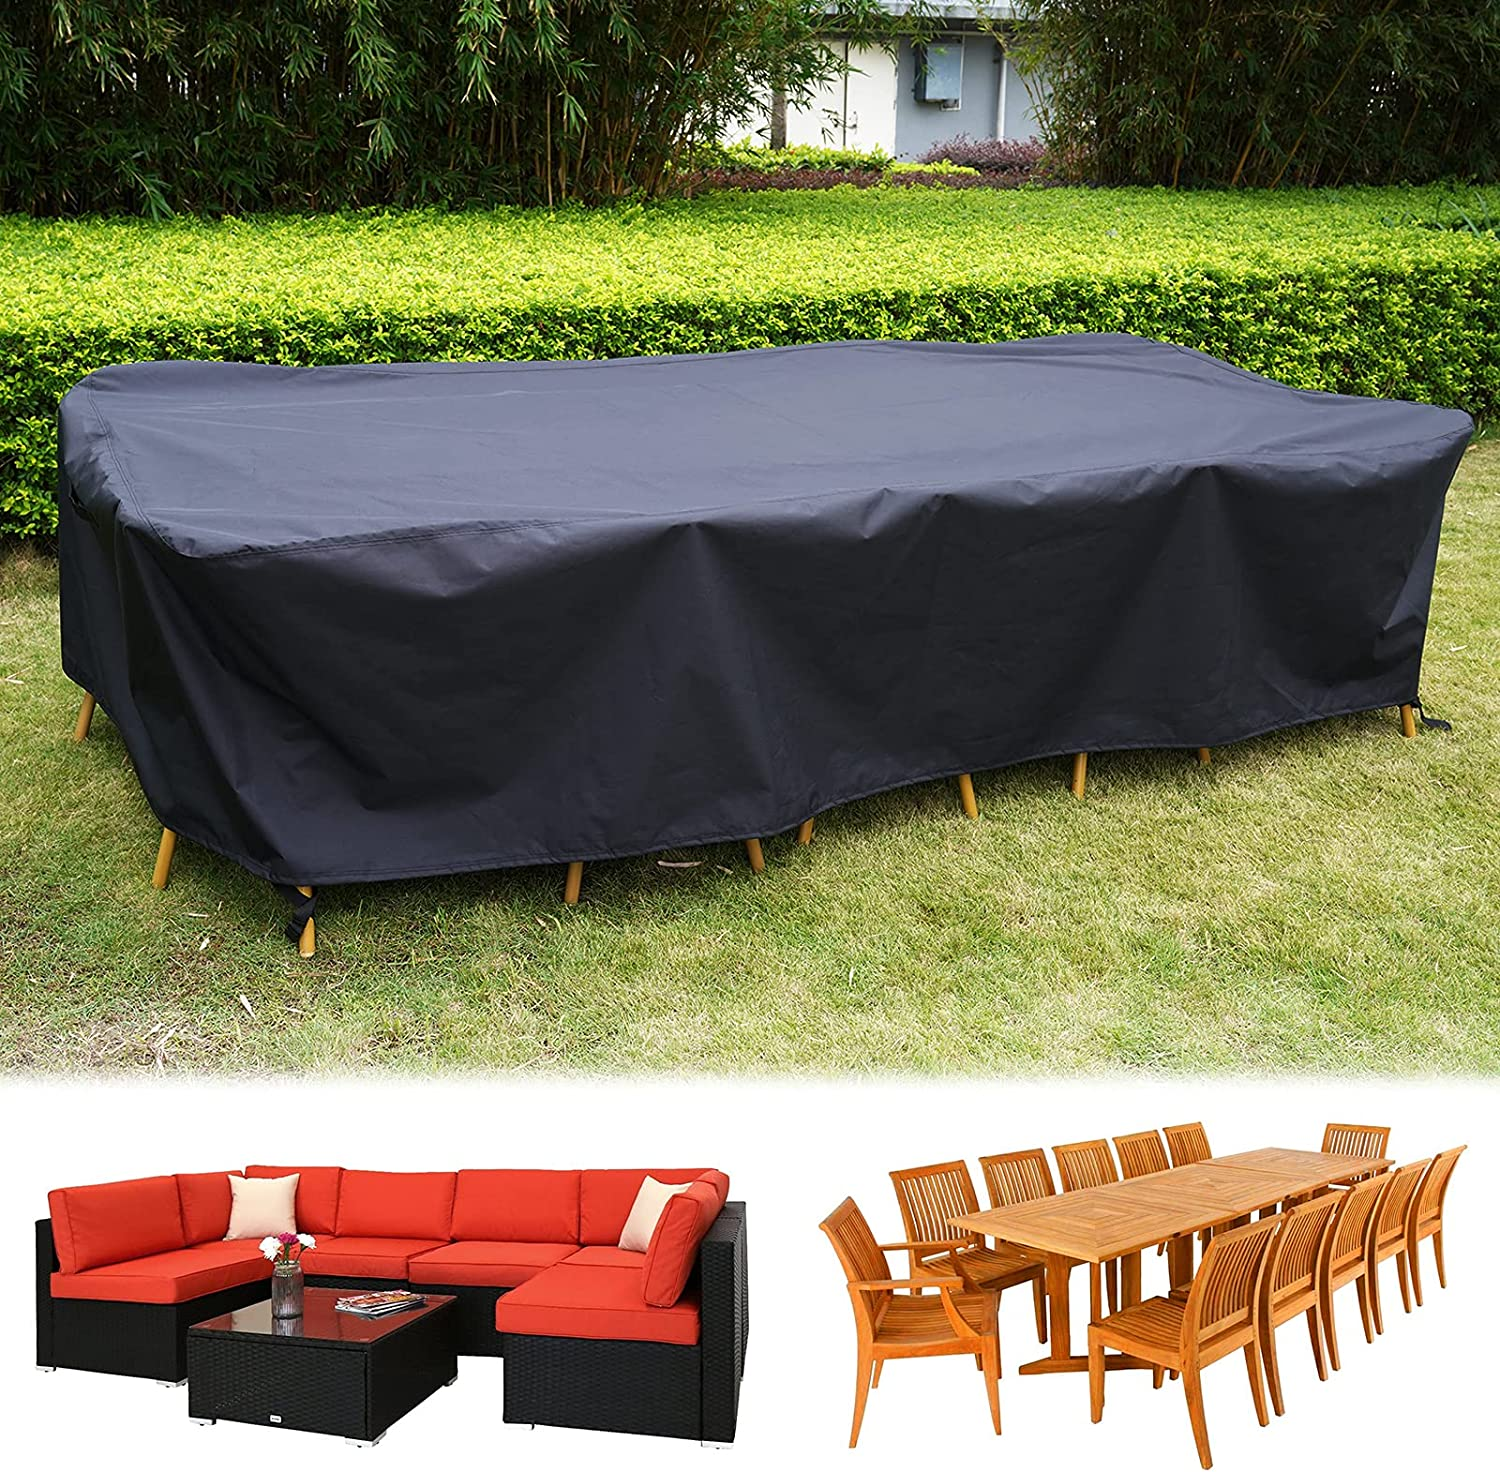 126 Inch Outdoor Waterproof Furniture Cover, Large Size Rectangular Cover for 6-8 Seats Sofa Furniture Set, 300D Heavy-duty Windproof Dining Table Chair Set Protective Cover, 126